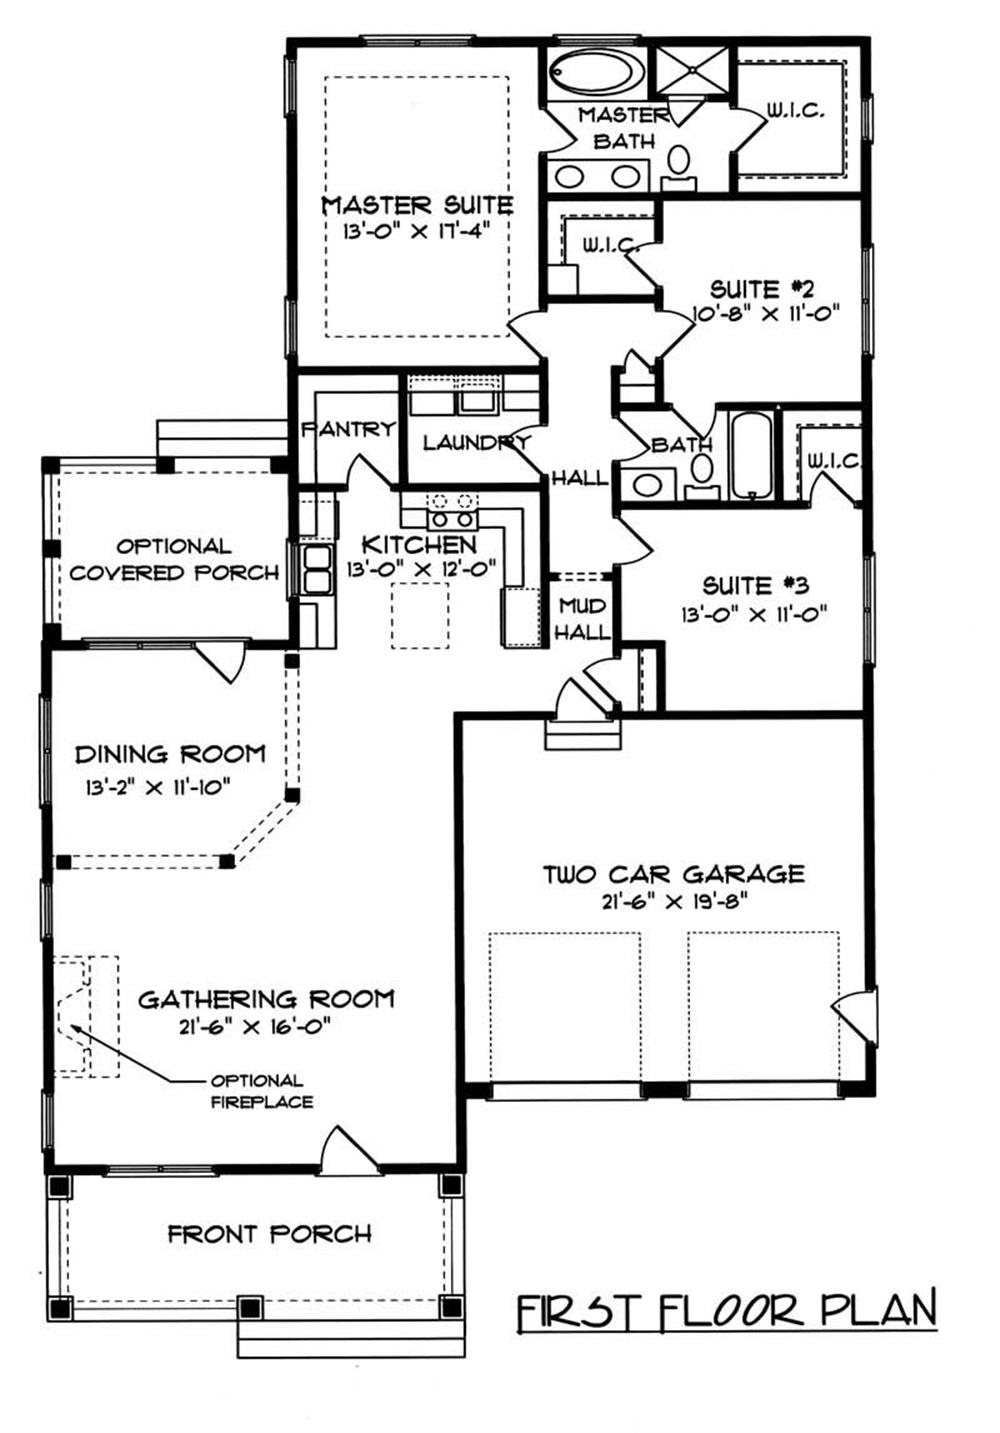 House Plan EDG-1728-B2 Main Floor Plan